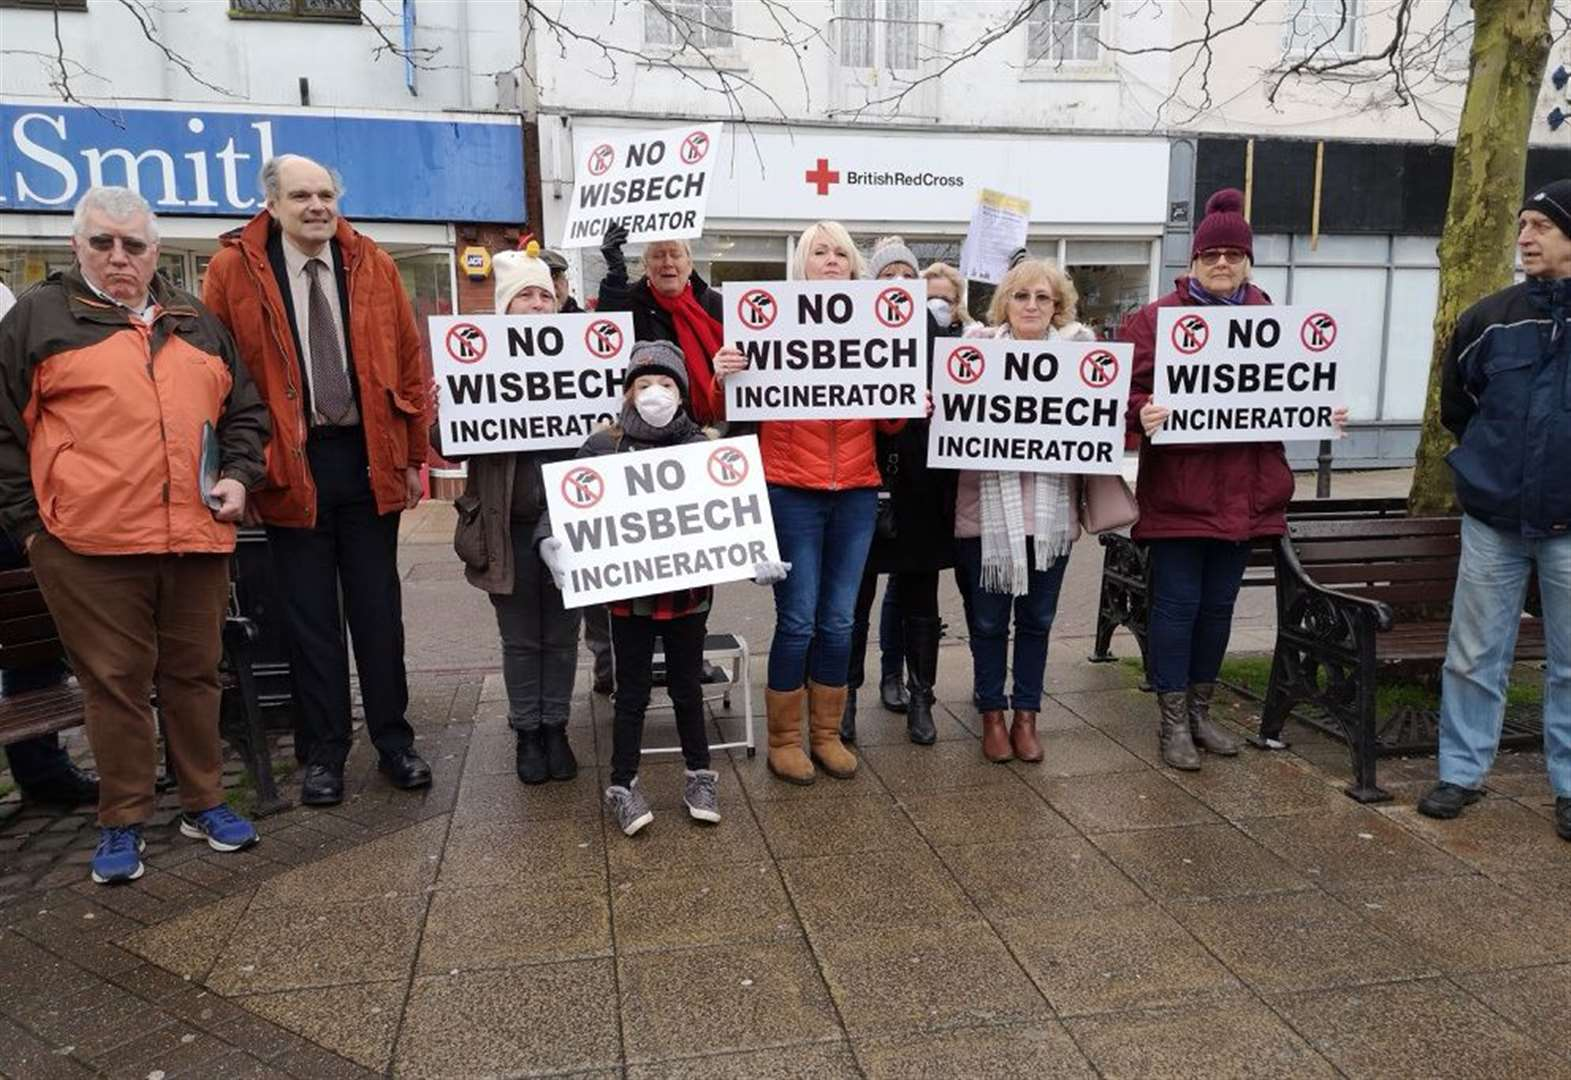 Over 300 turn out for anti-incinerator rally in Wisbech - despite blustery winds and rain